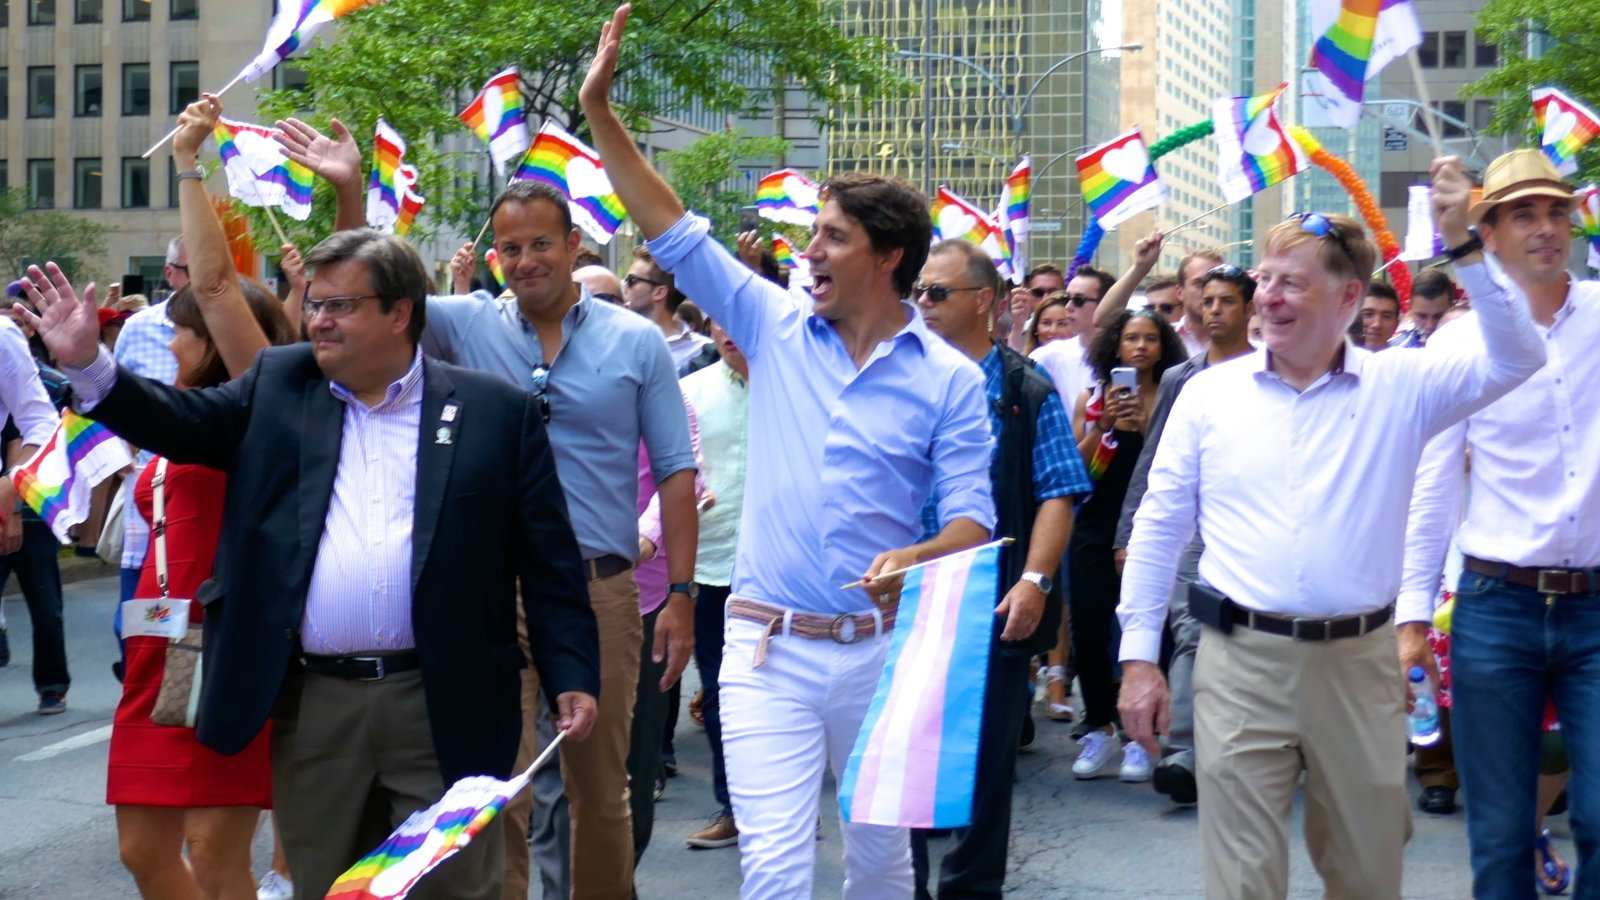 Justin Trudeau leading the Montreal gay Pride parade